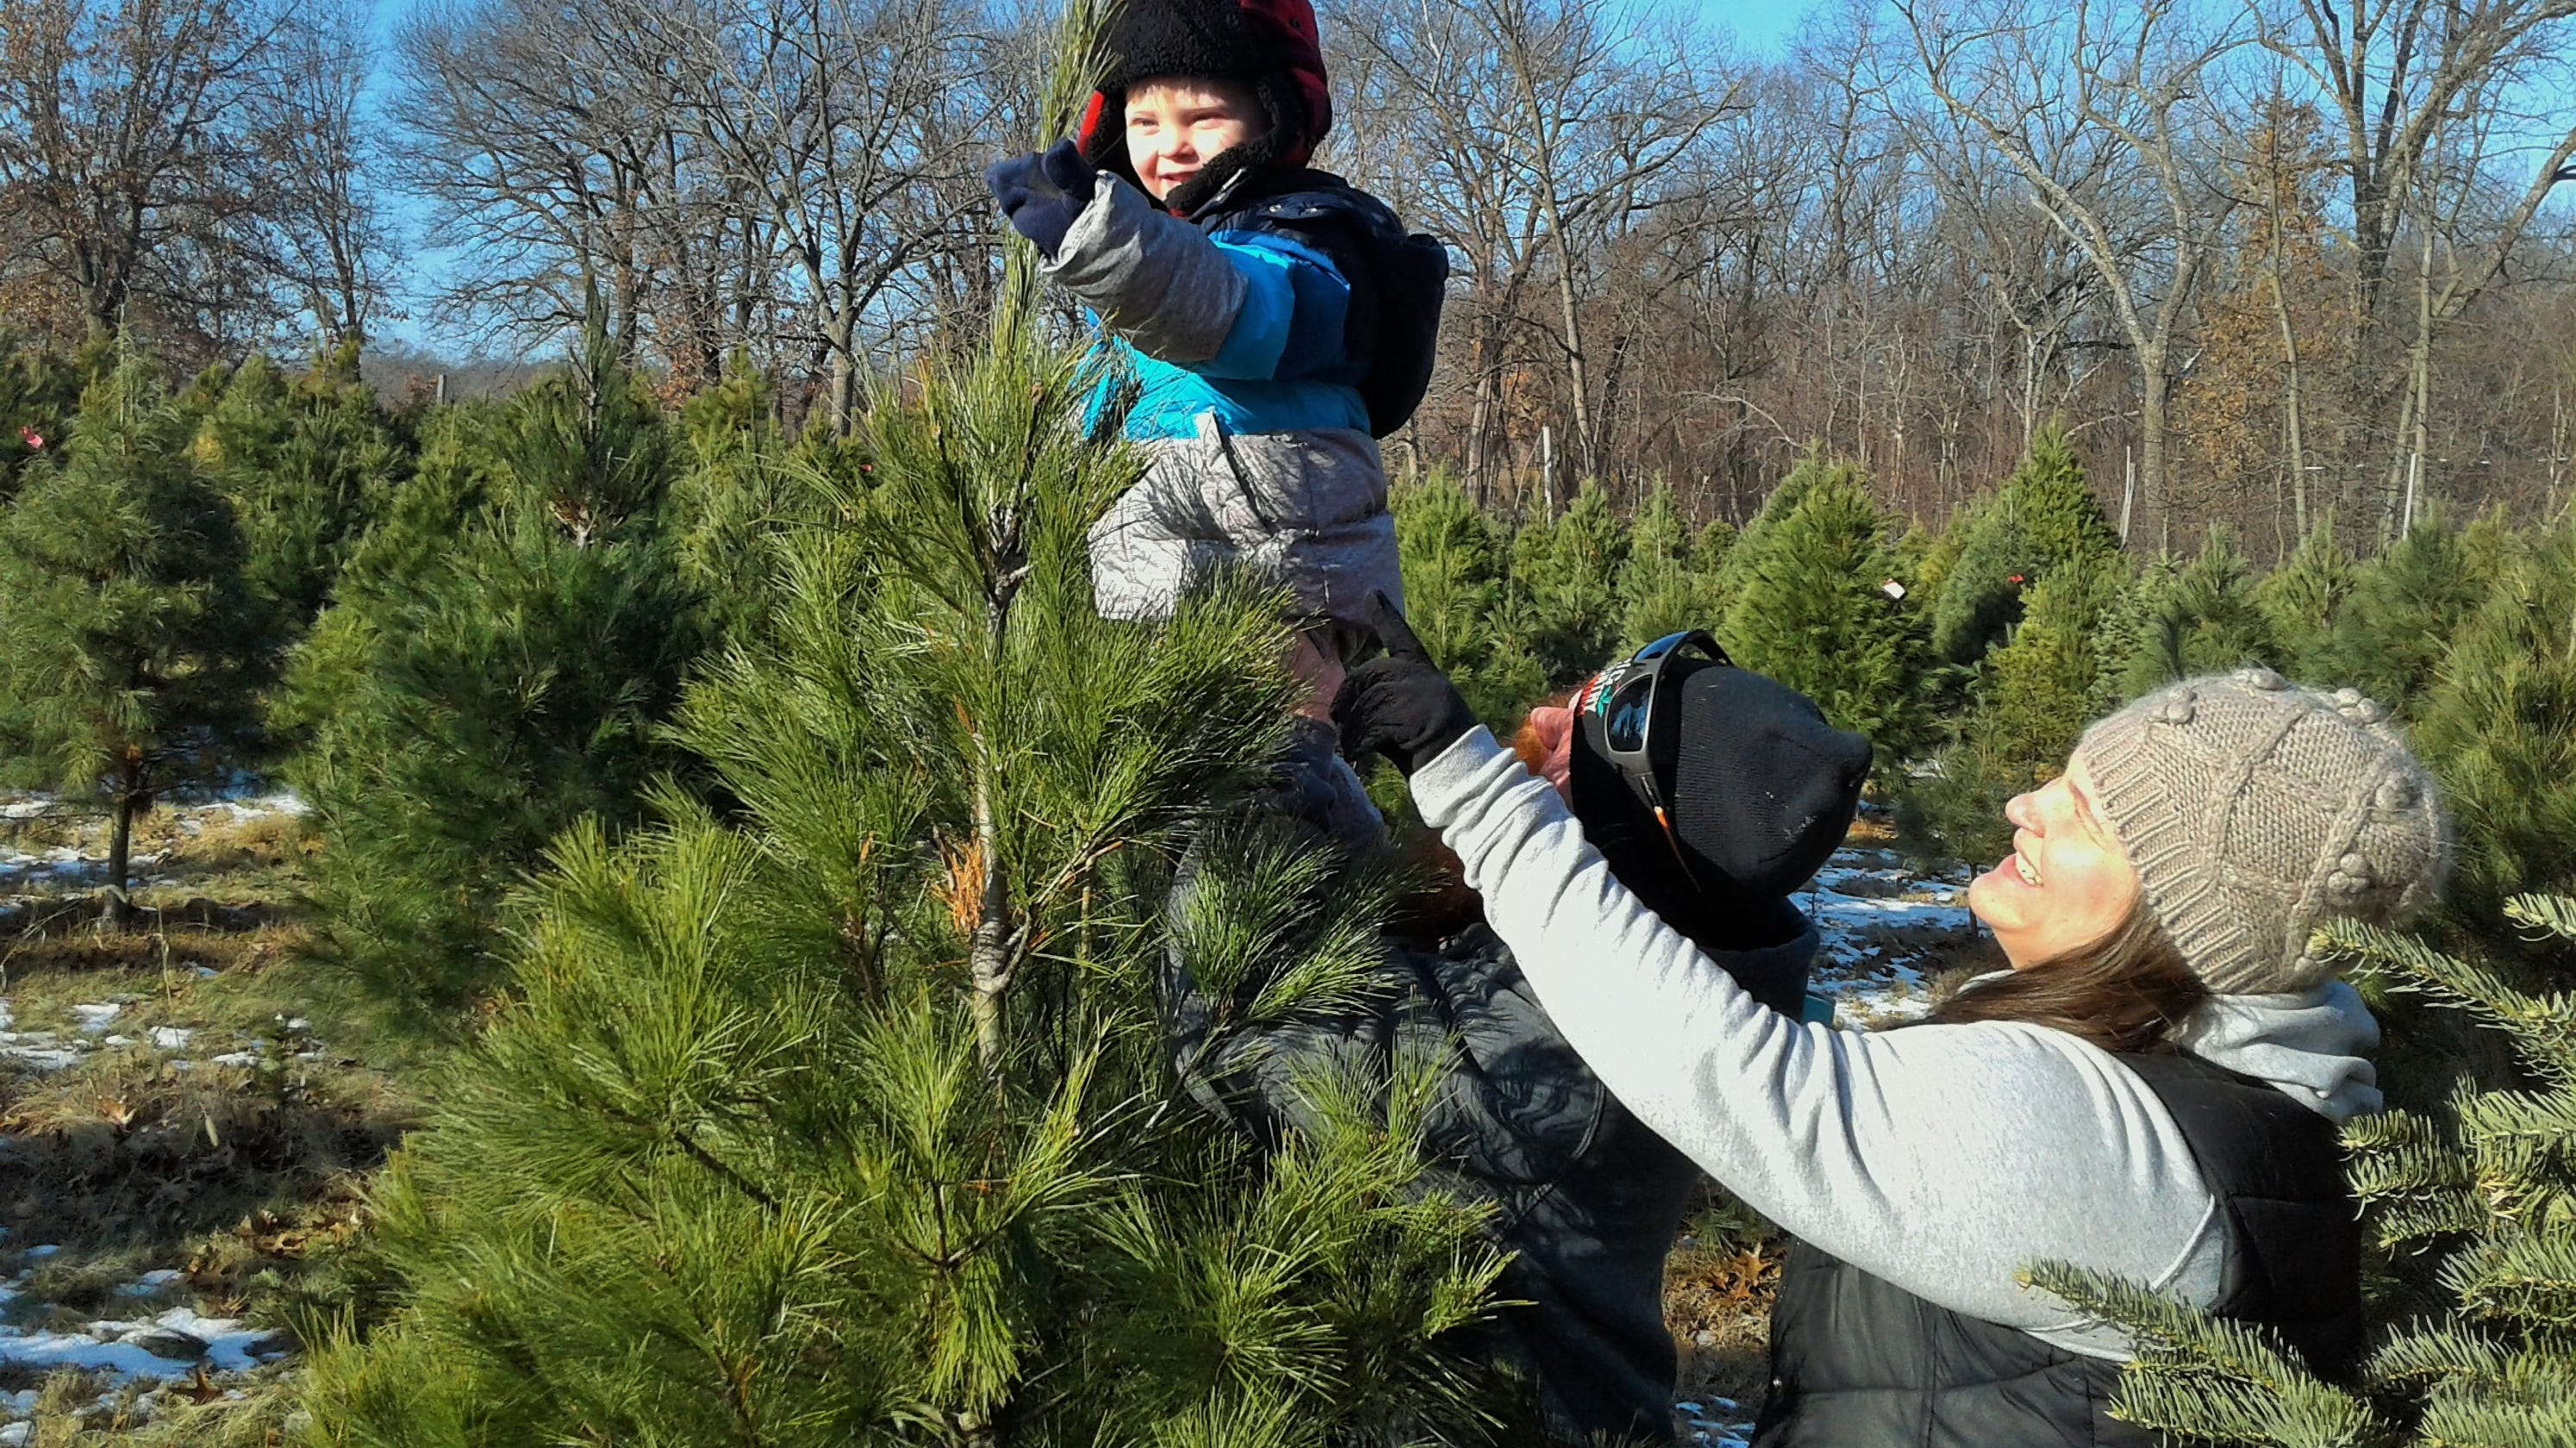 Local Farms Rapidly Selling Out Of Fresh Cut Christmas Trees